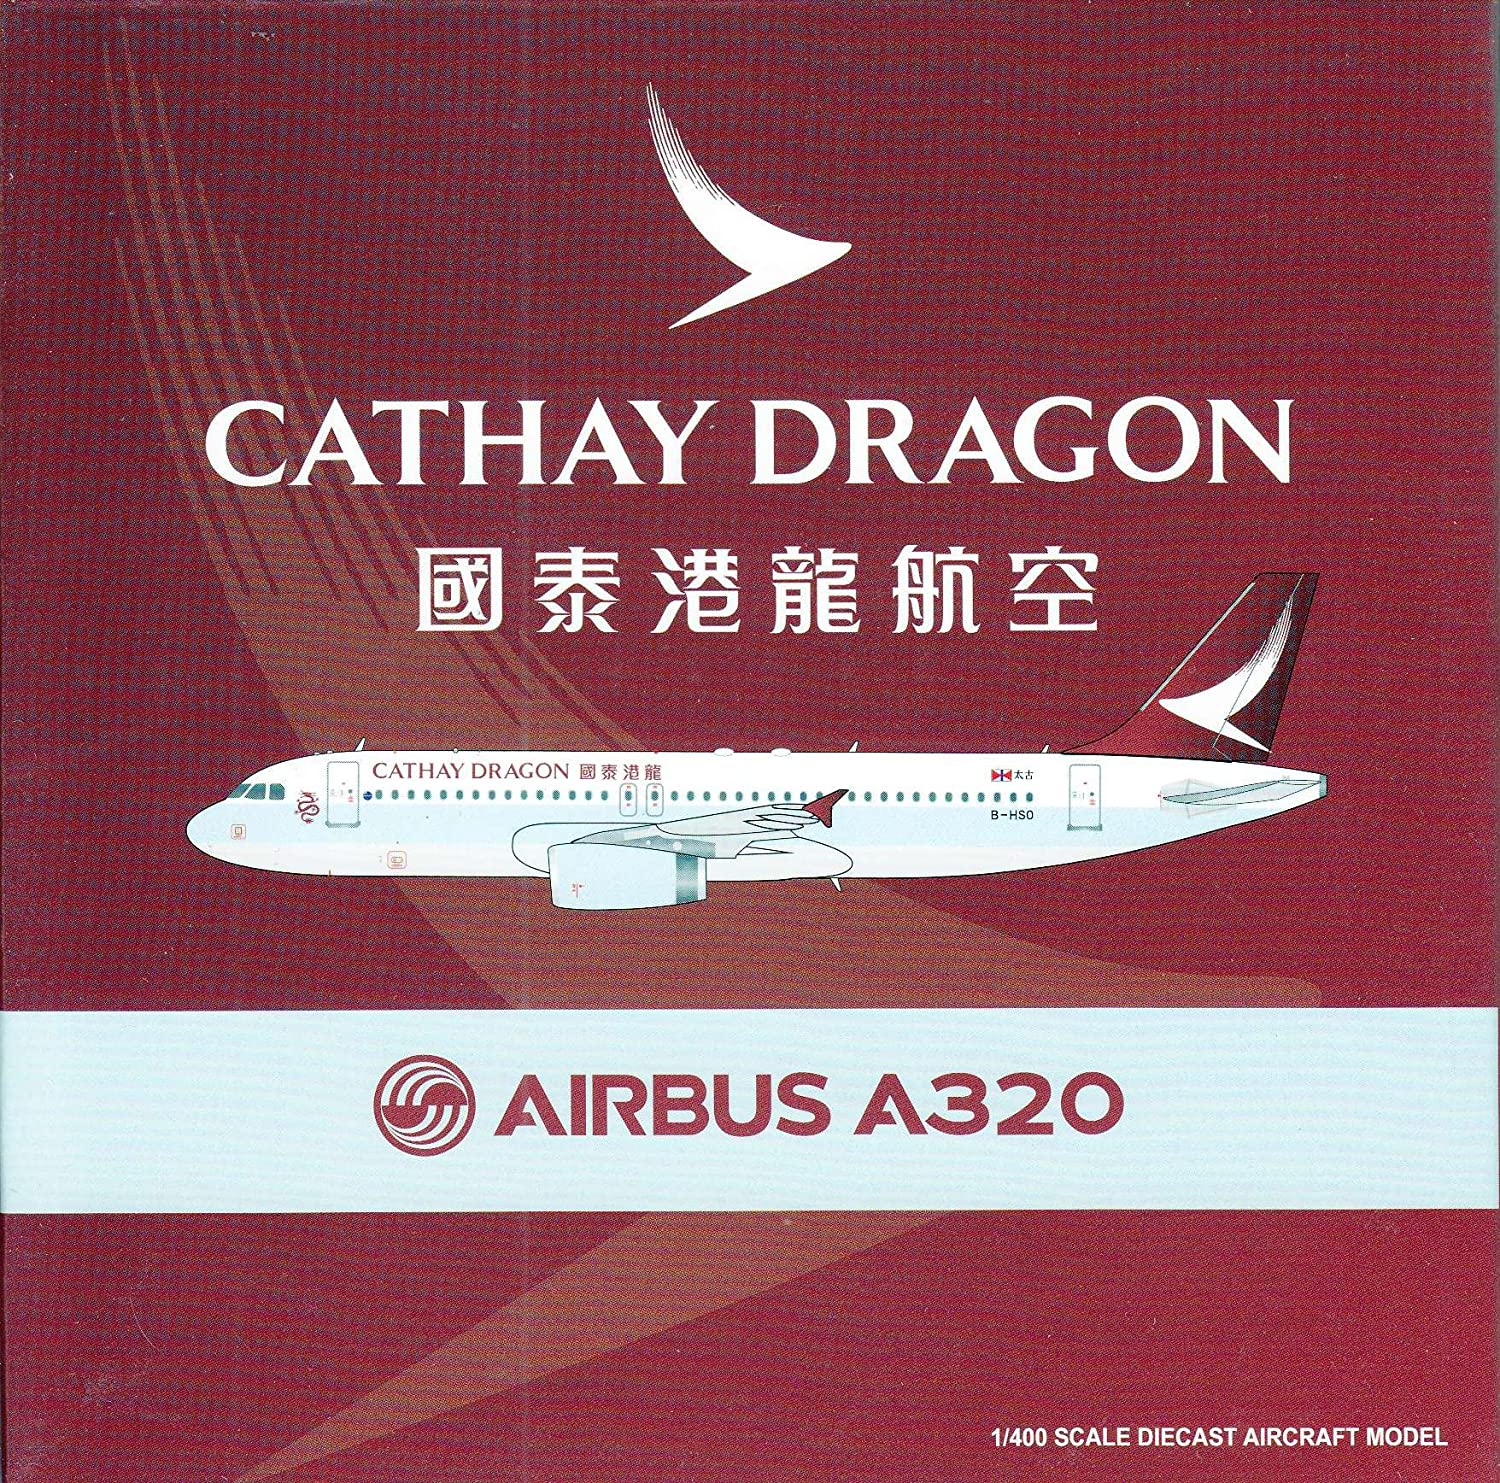 Amazon com: JCW4956 1:400 JC Wings Cathay Dragon Airbus A320